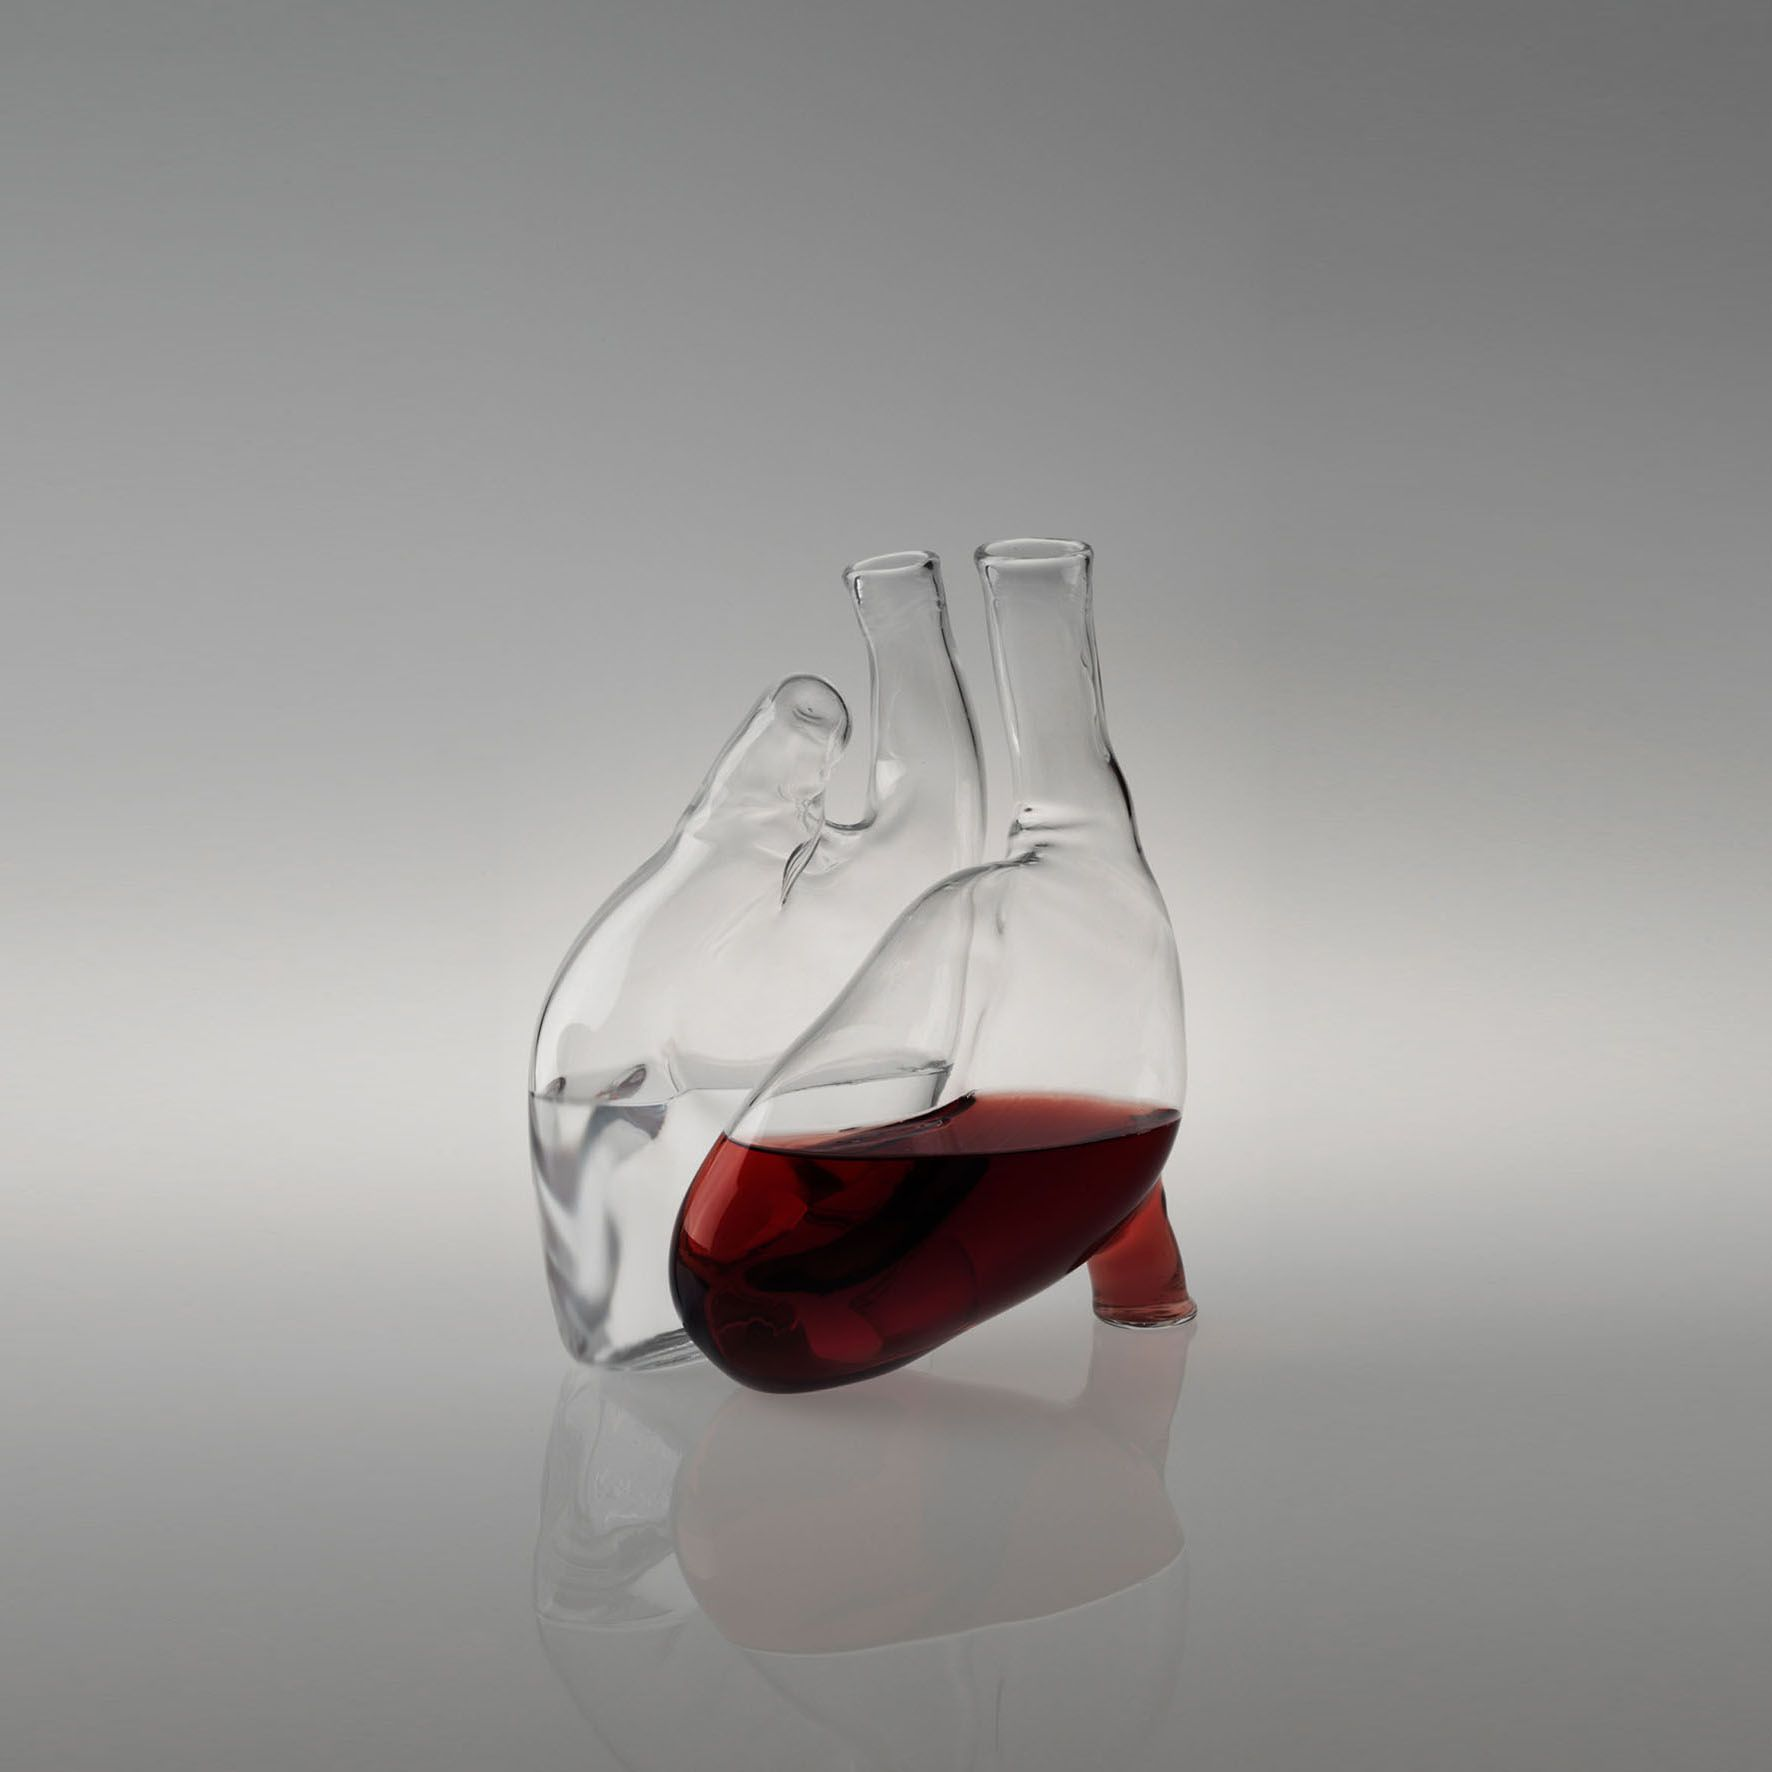 Modern Heart Shaped Gifts For Your Valentine Design Milk Wine Carafe Carafe Design Carafe